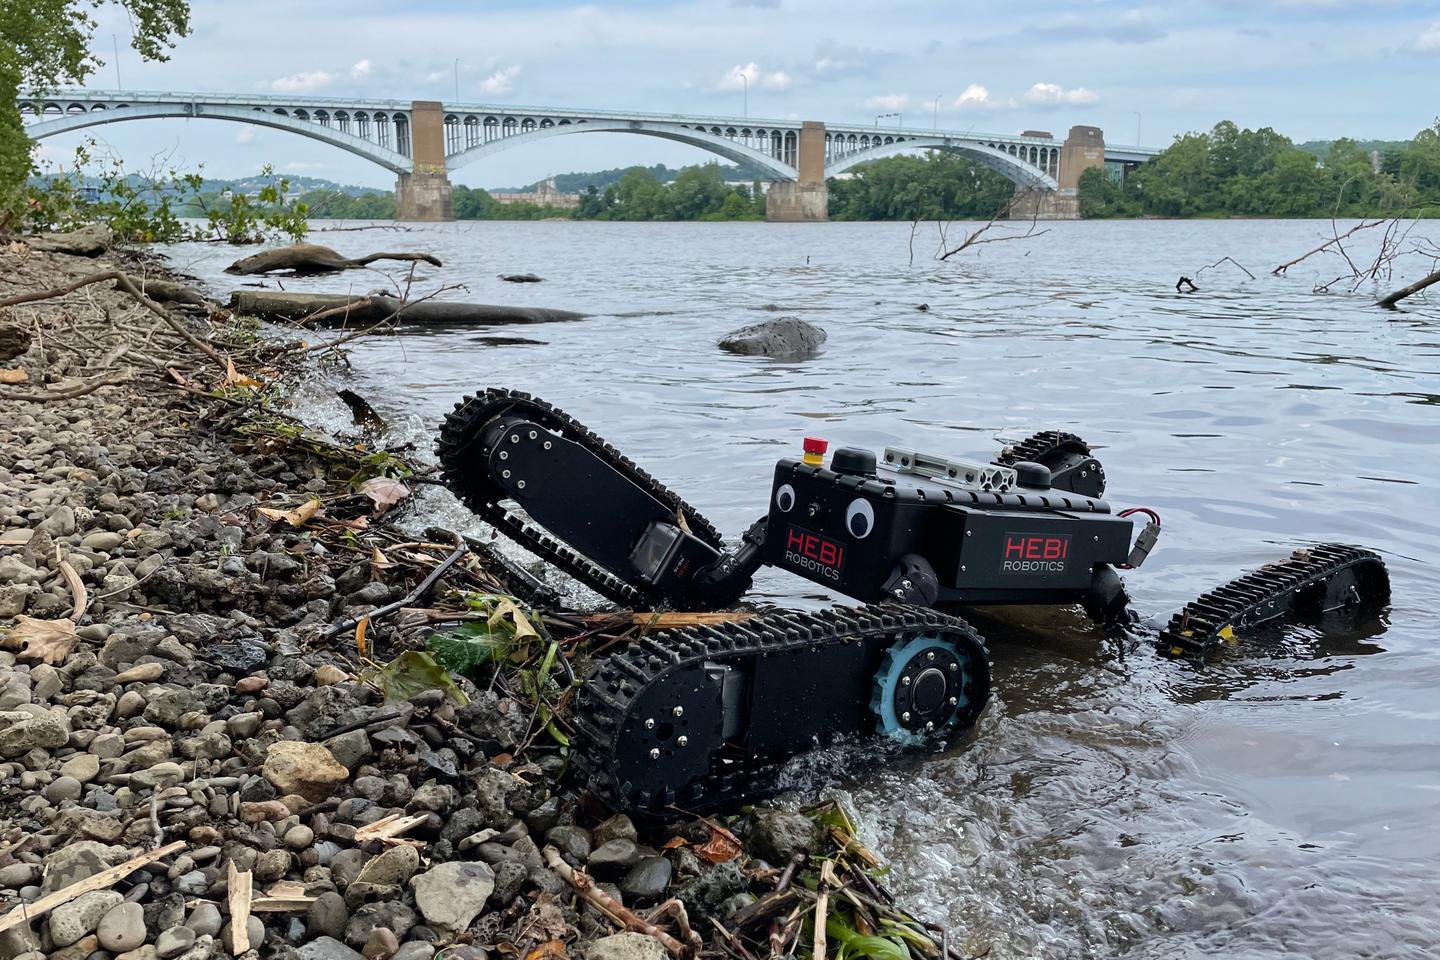 The IP67-waterproof Tready robot emerges from the water (googly eyes not included)